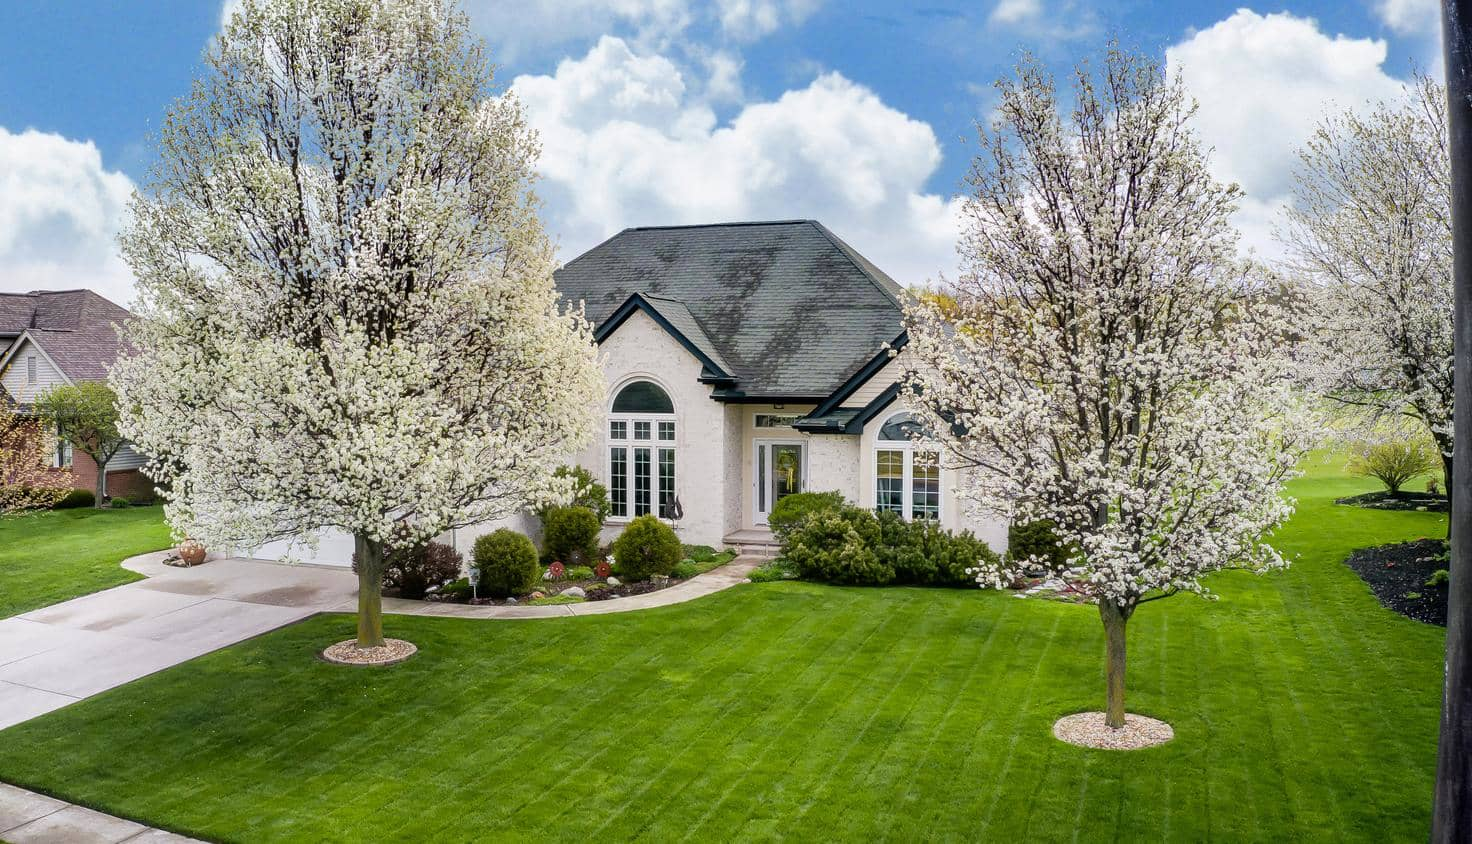 523 Pine Valley Drive Bowling Green OH 43402 on Vimeo